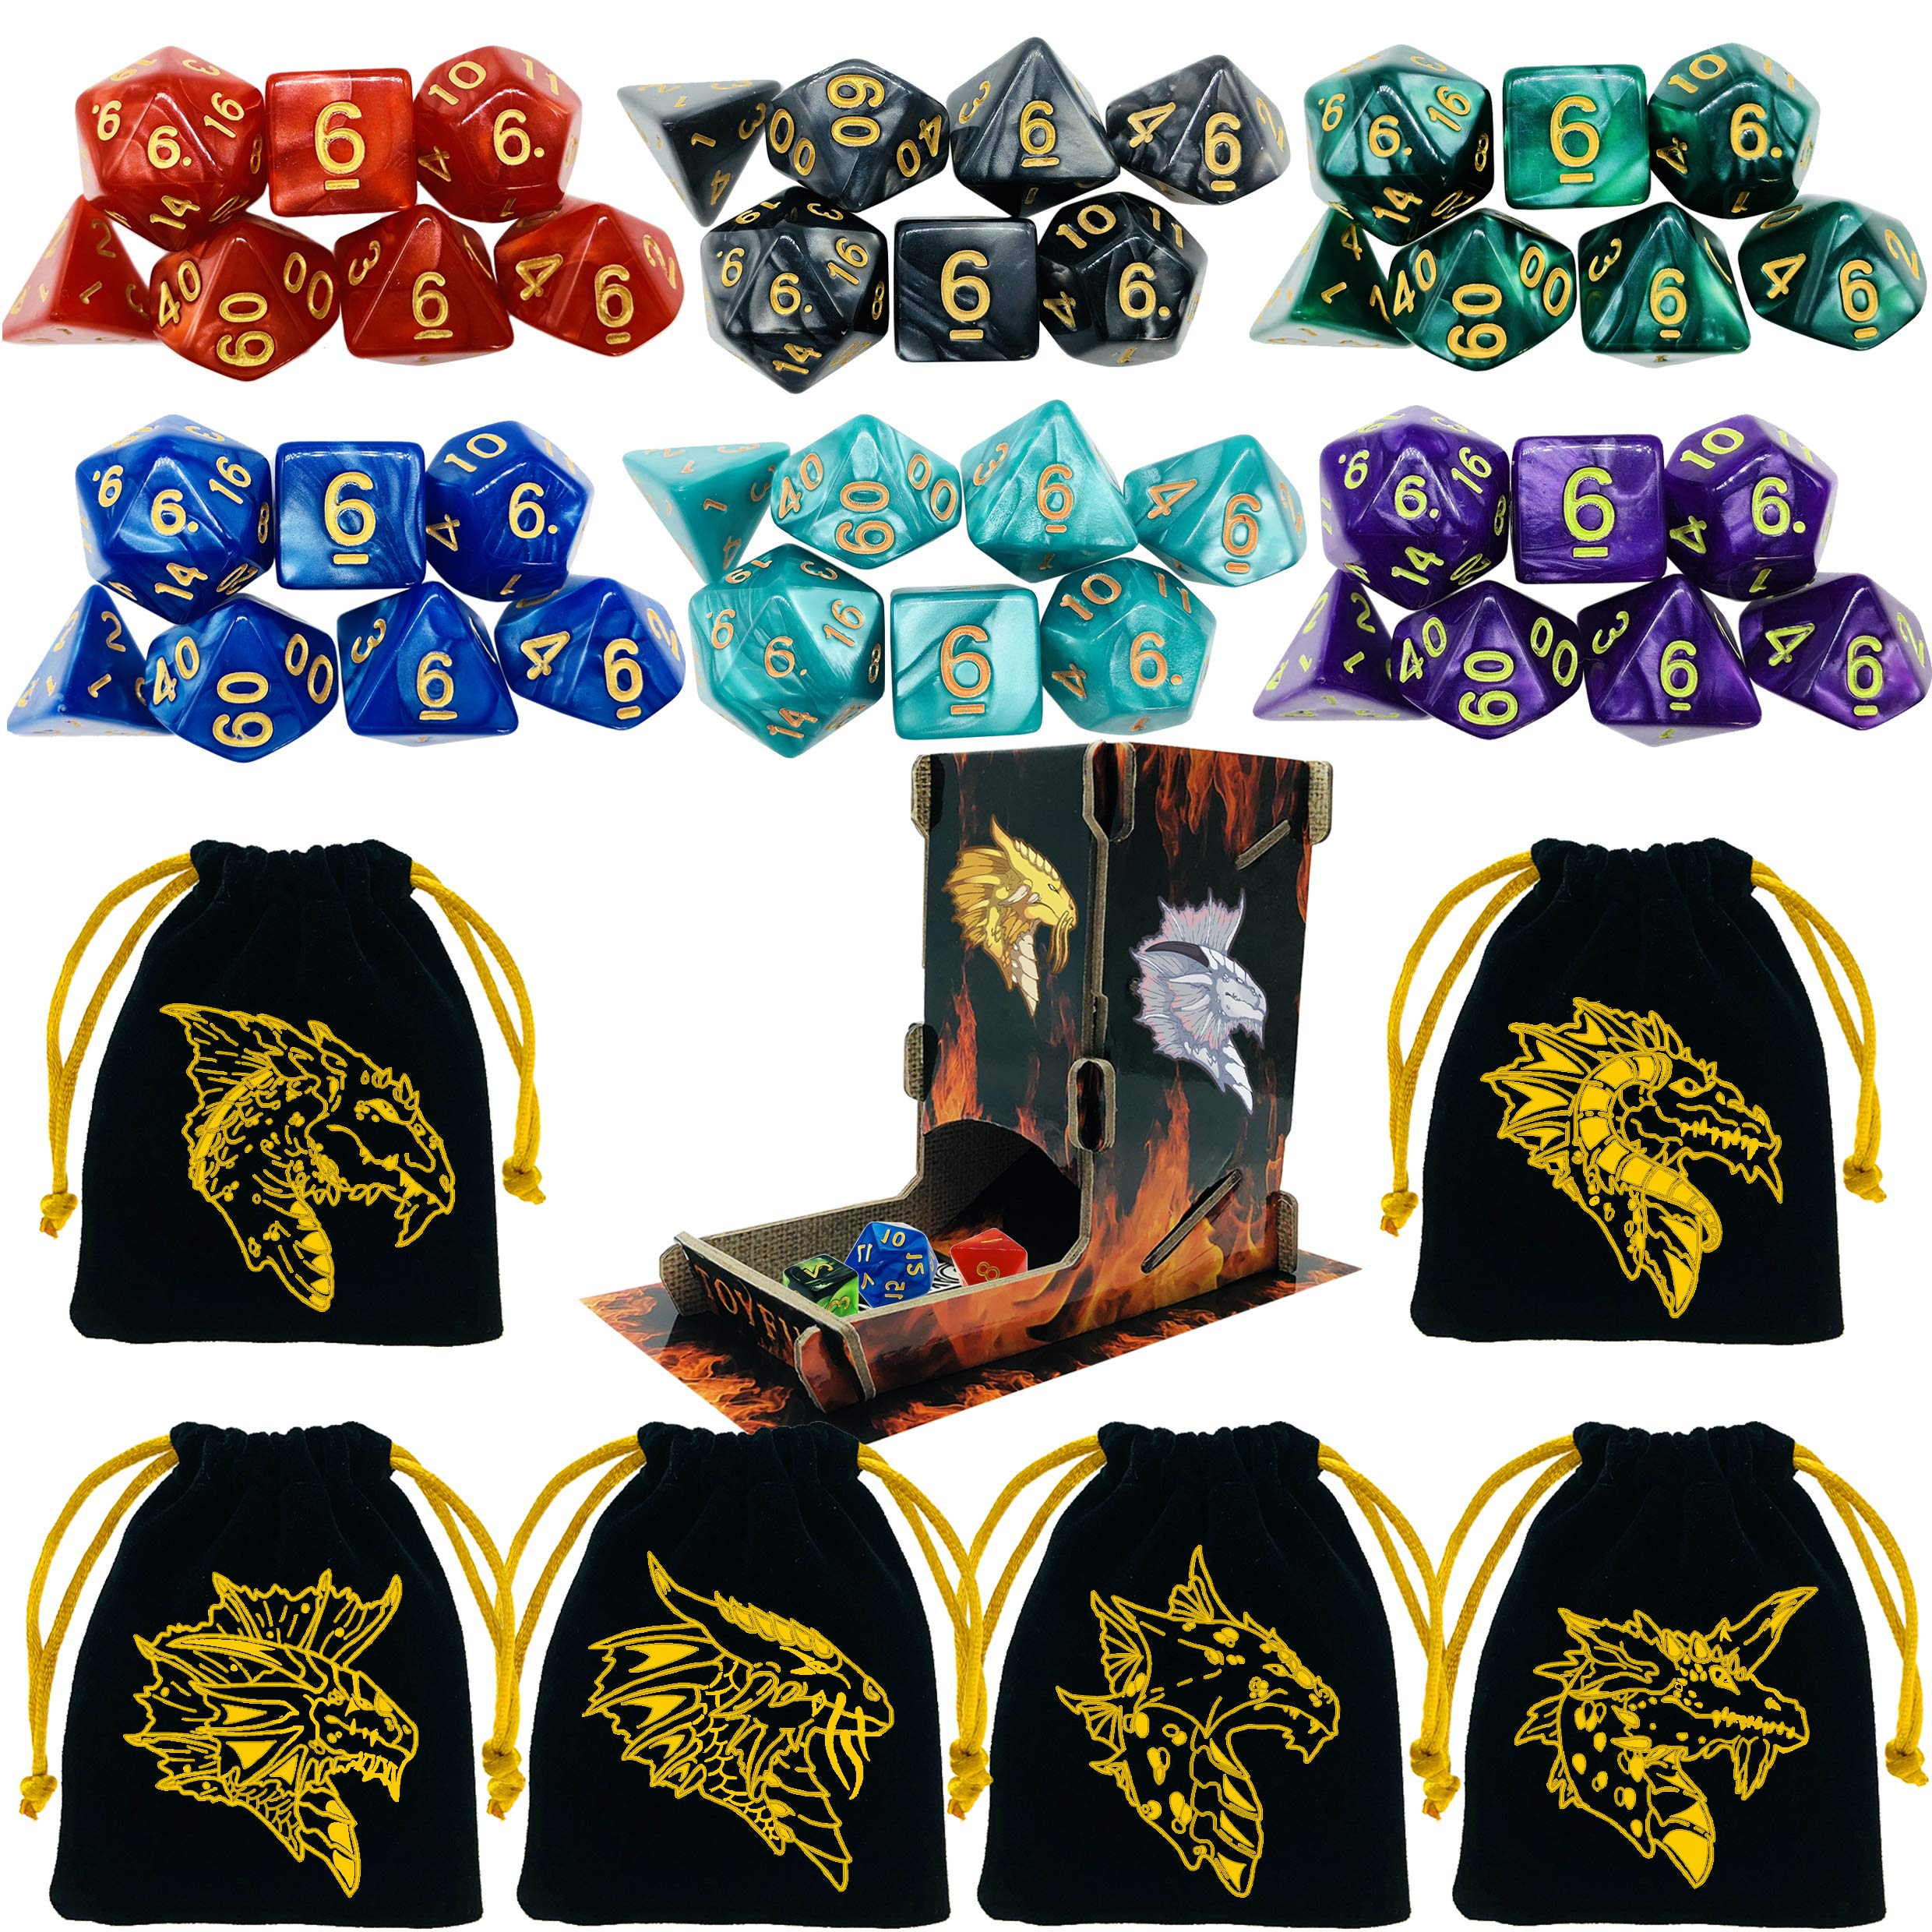 TOYFUL 6 Sets Dnd Dice Polyhedral Dungeons and Dragons DND RPG MTG Table Game Dice Bulk with FREE Six Drawstring Bags and D&D Dice Tower Black by TOYFUL